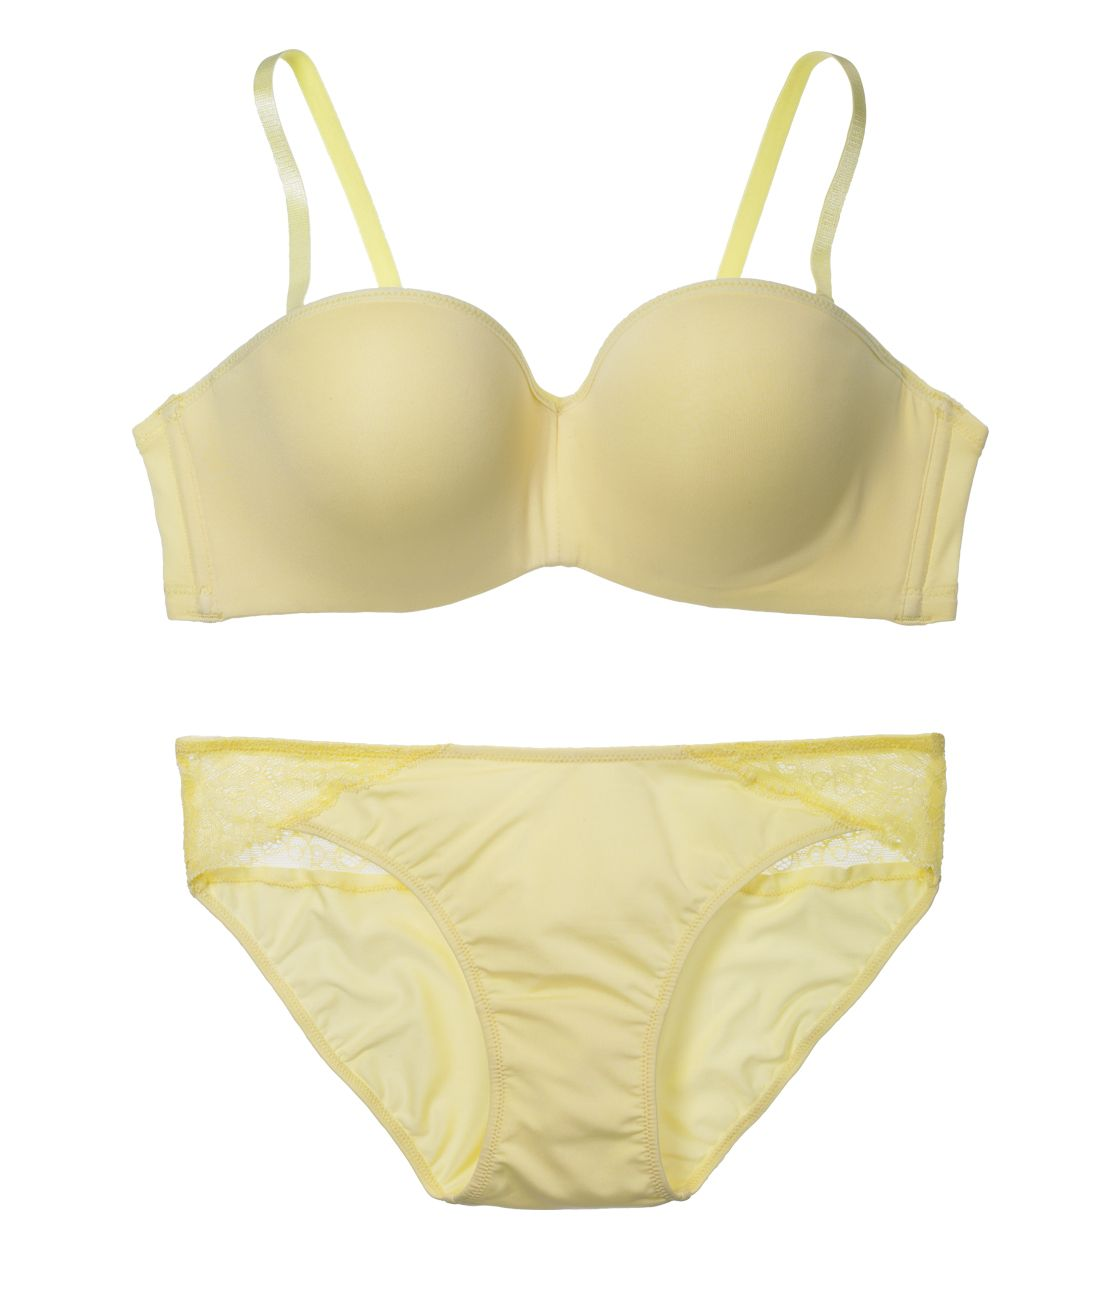 YM NEW simple strapless set